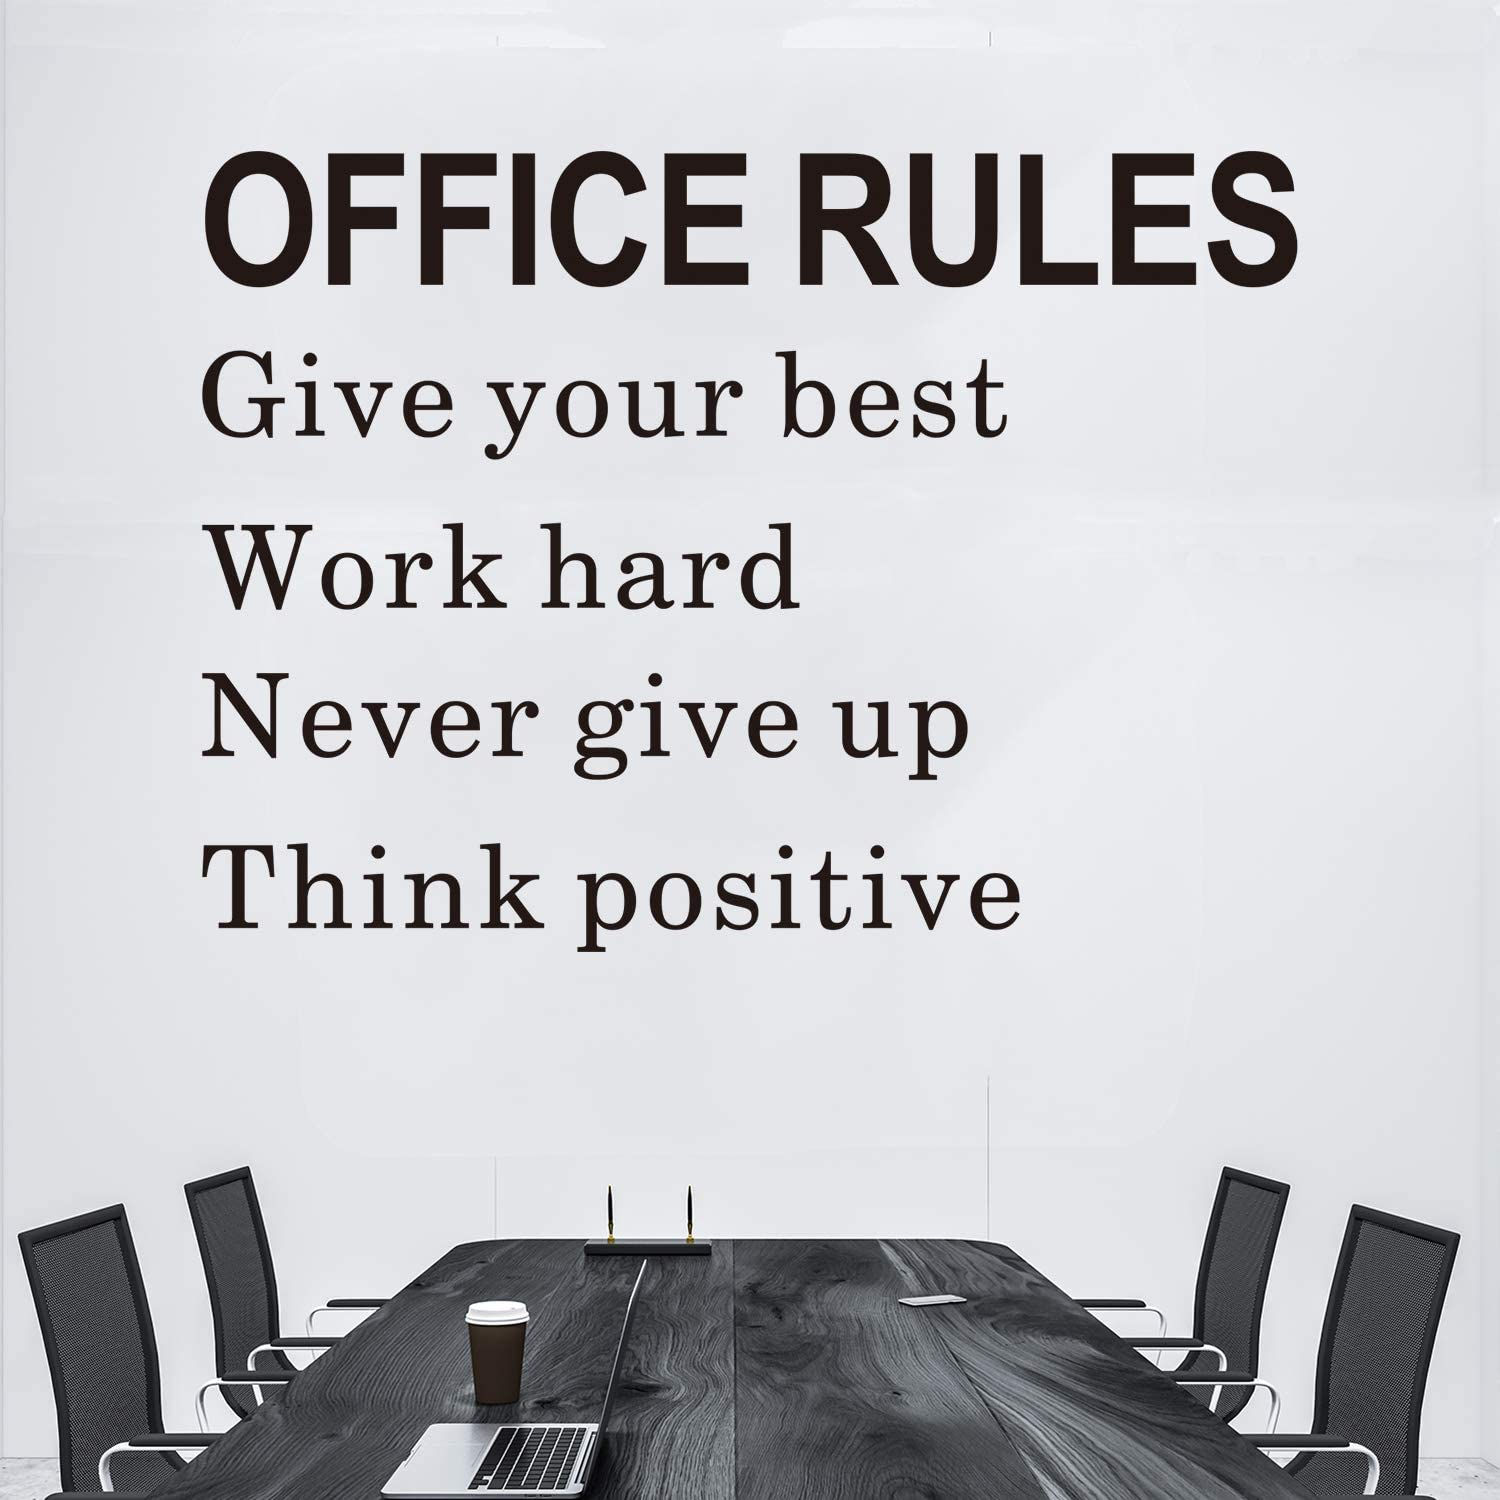 VODOE Inspirational Wall Decals, Office Wall Decals, Motivational Quote Workplace School Home Art Decor Vinyl Wall Stickers Office Rules Give Your Best Work Hard Never Give Up Think Positive 22